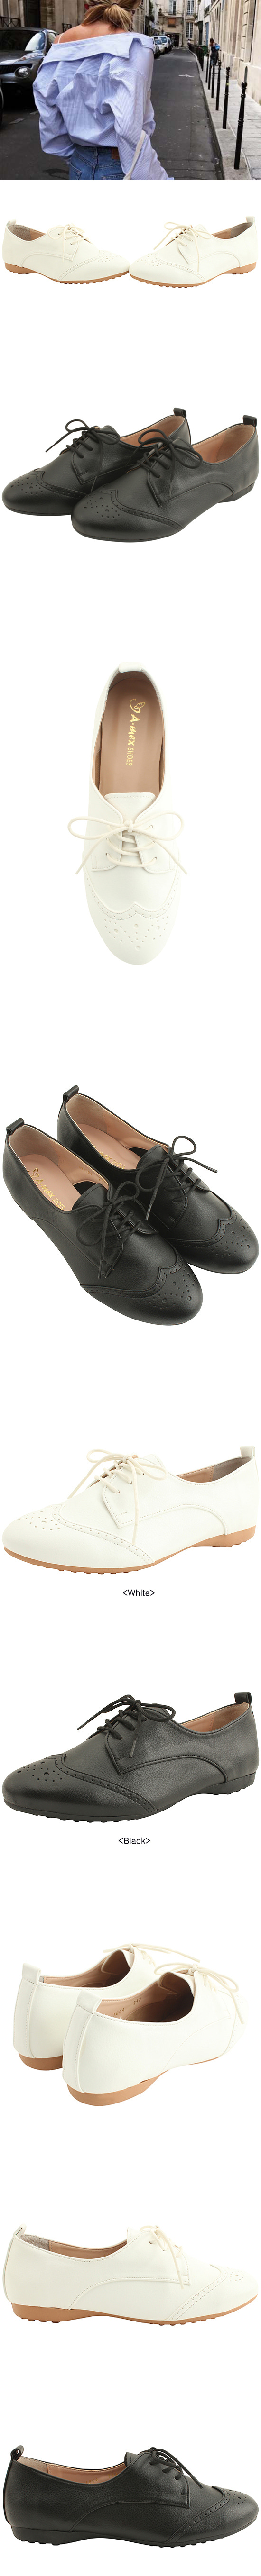 Oxford Simple Loafer Shoes Black